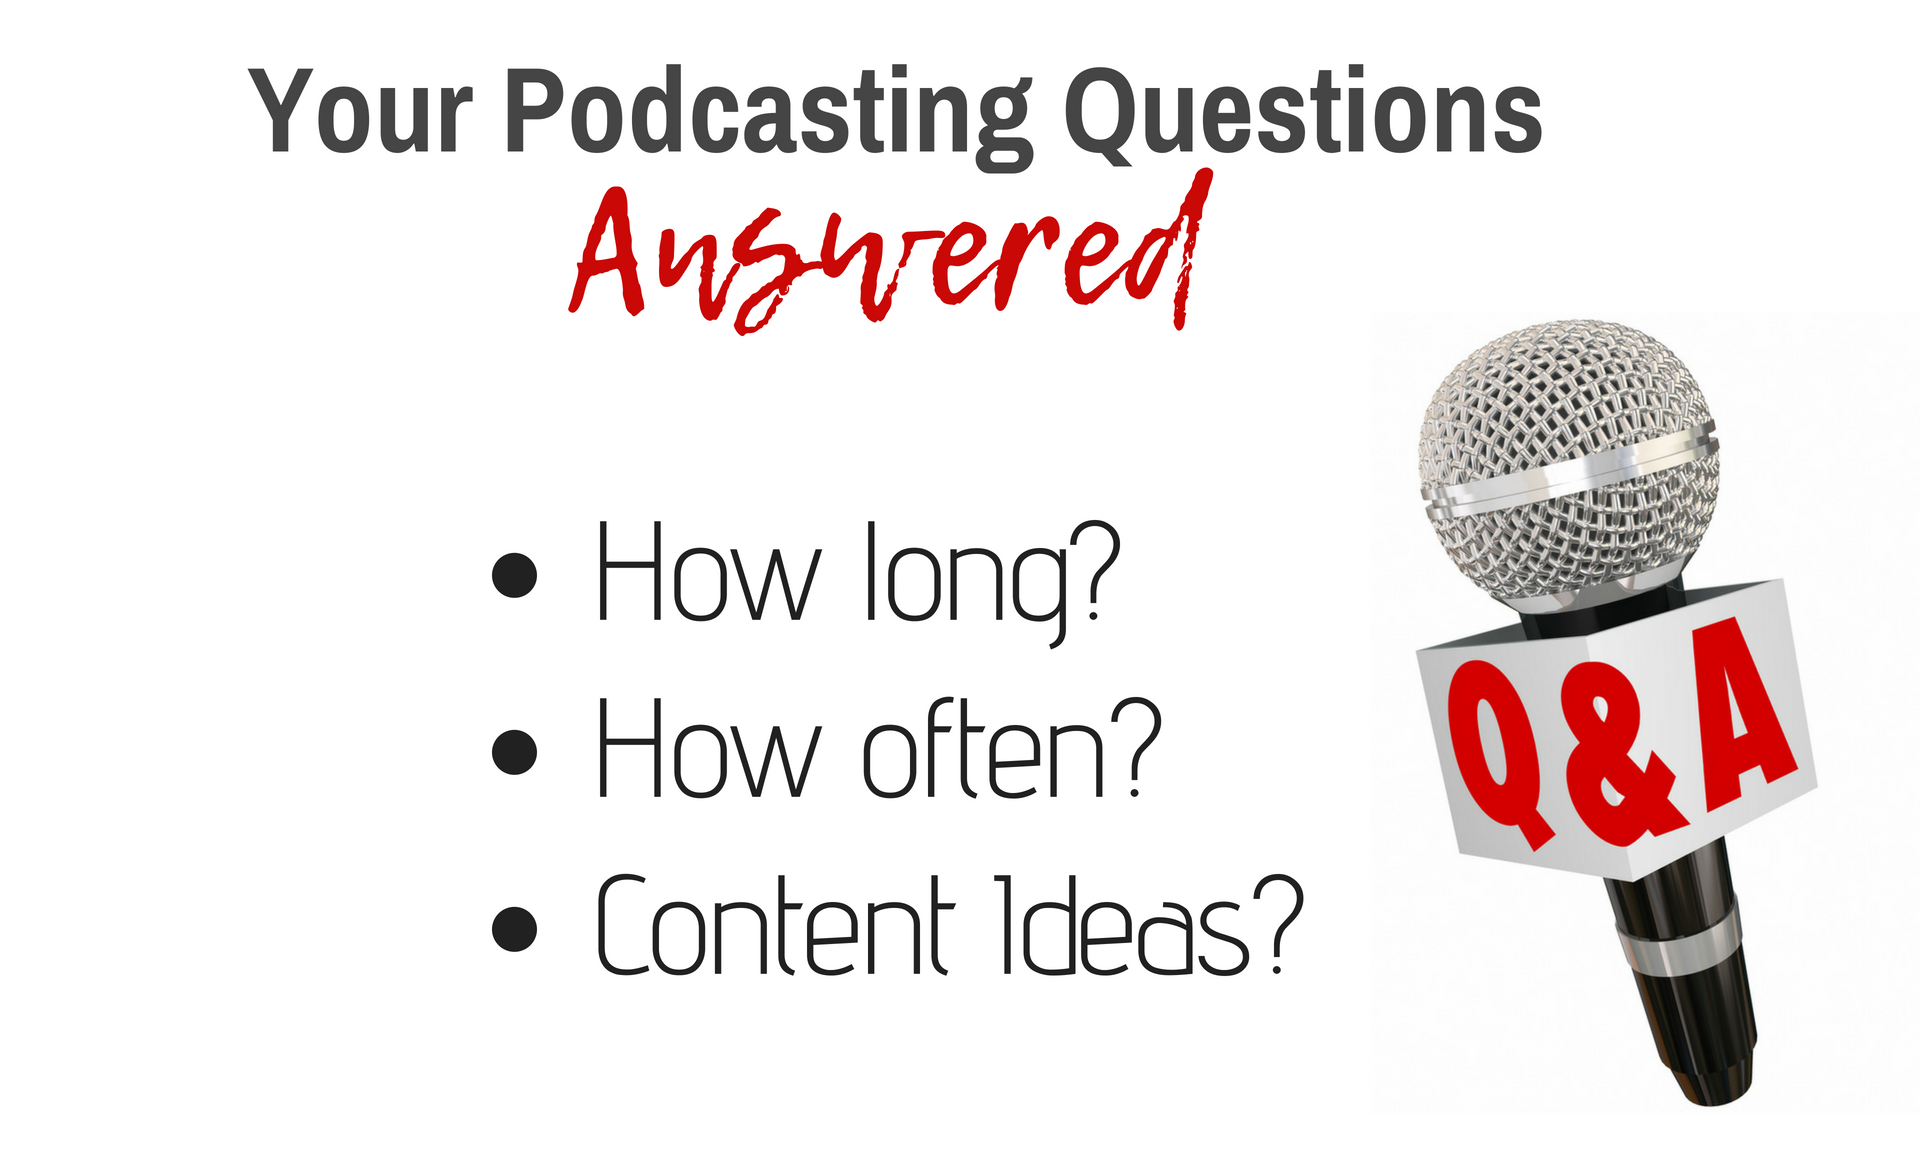 Your Podcasting Questions Answered